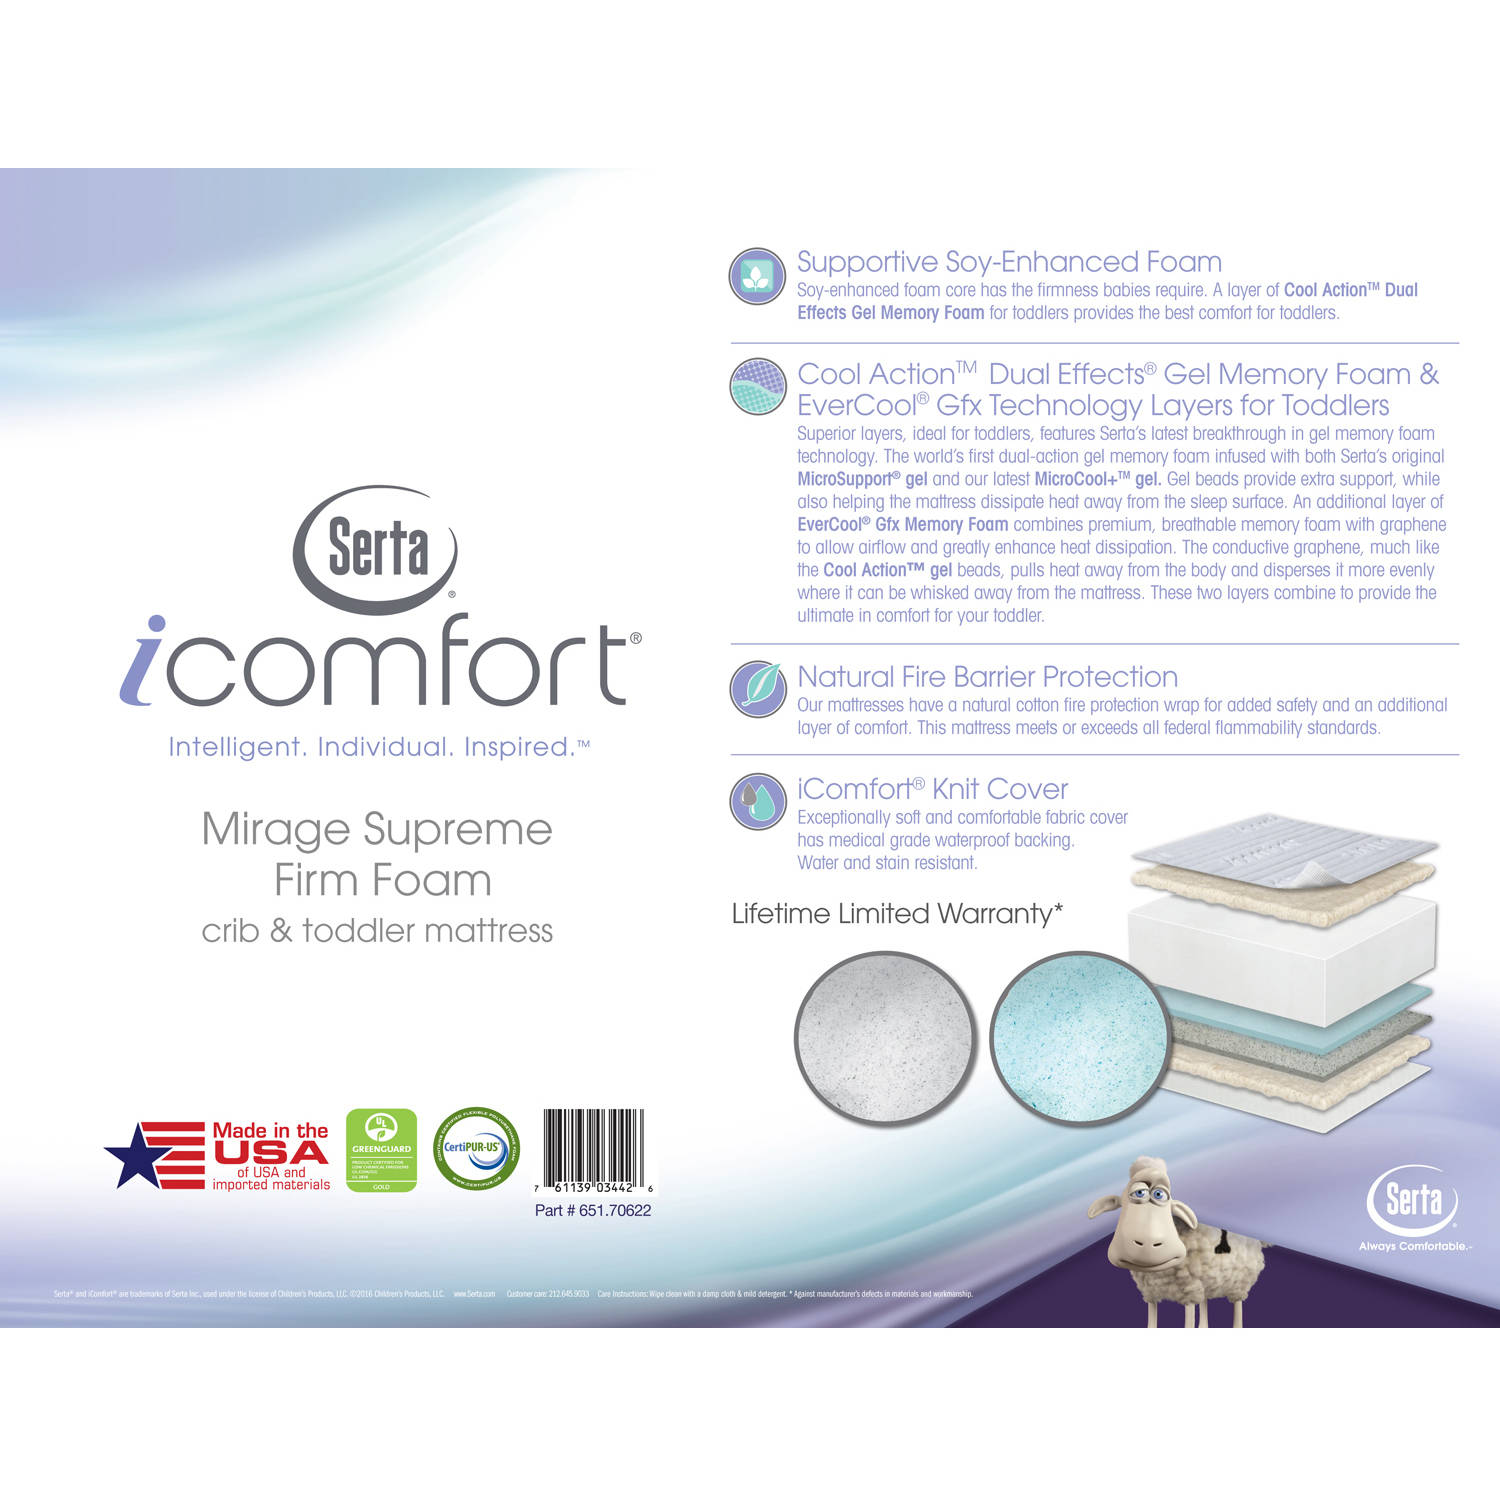 serta icomfort mirage supreme foam crib and toddler mattress